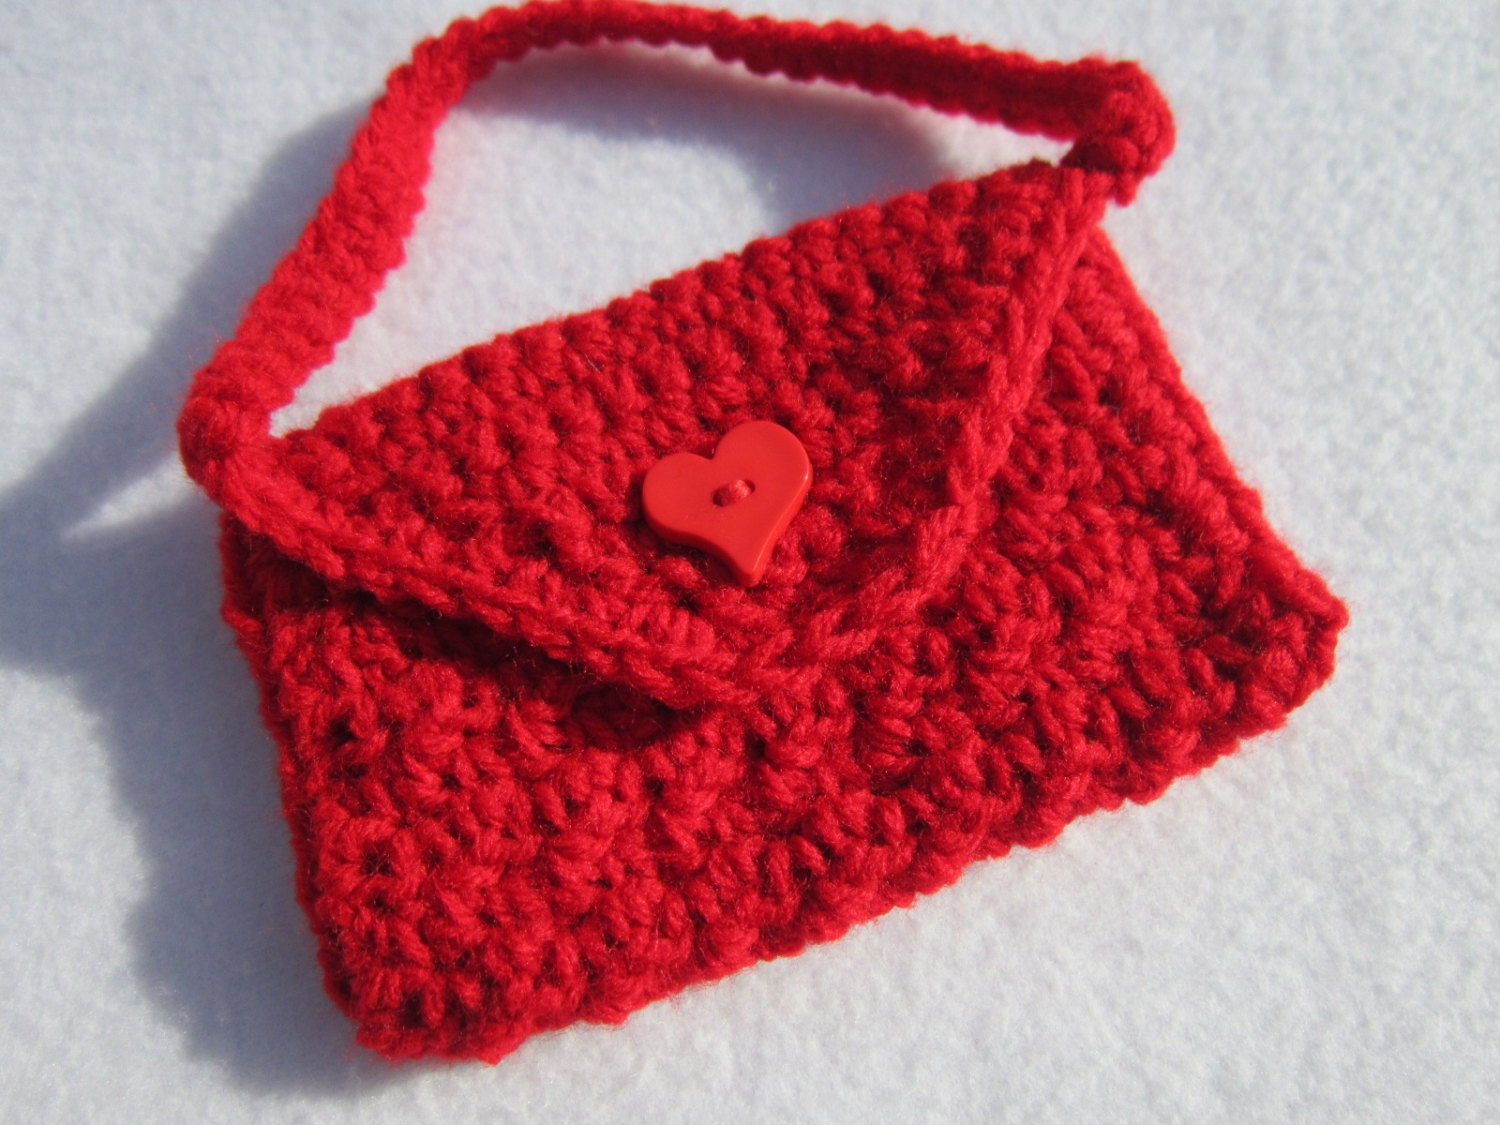 Crochet Bag For Girl : Crochet Purse for Little Girl Christmas Bag by crochetedbycharlene